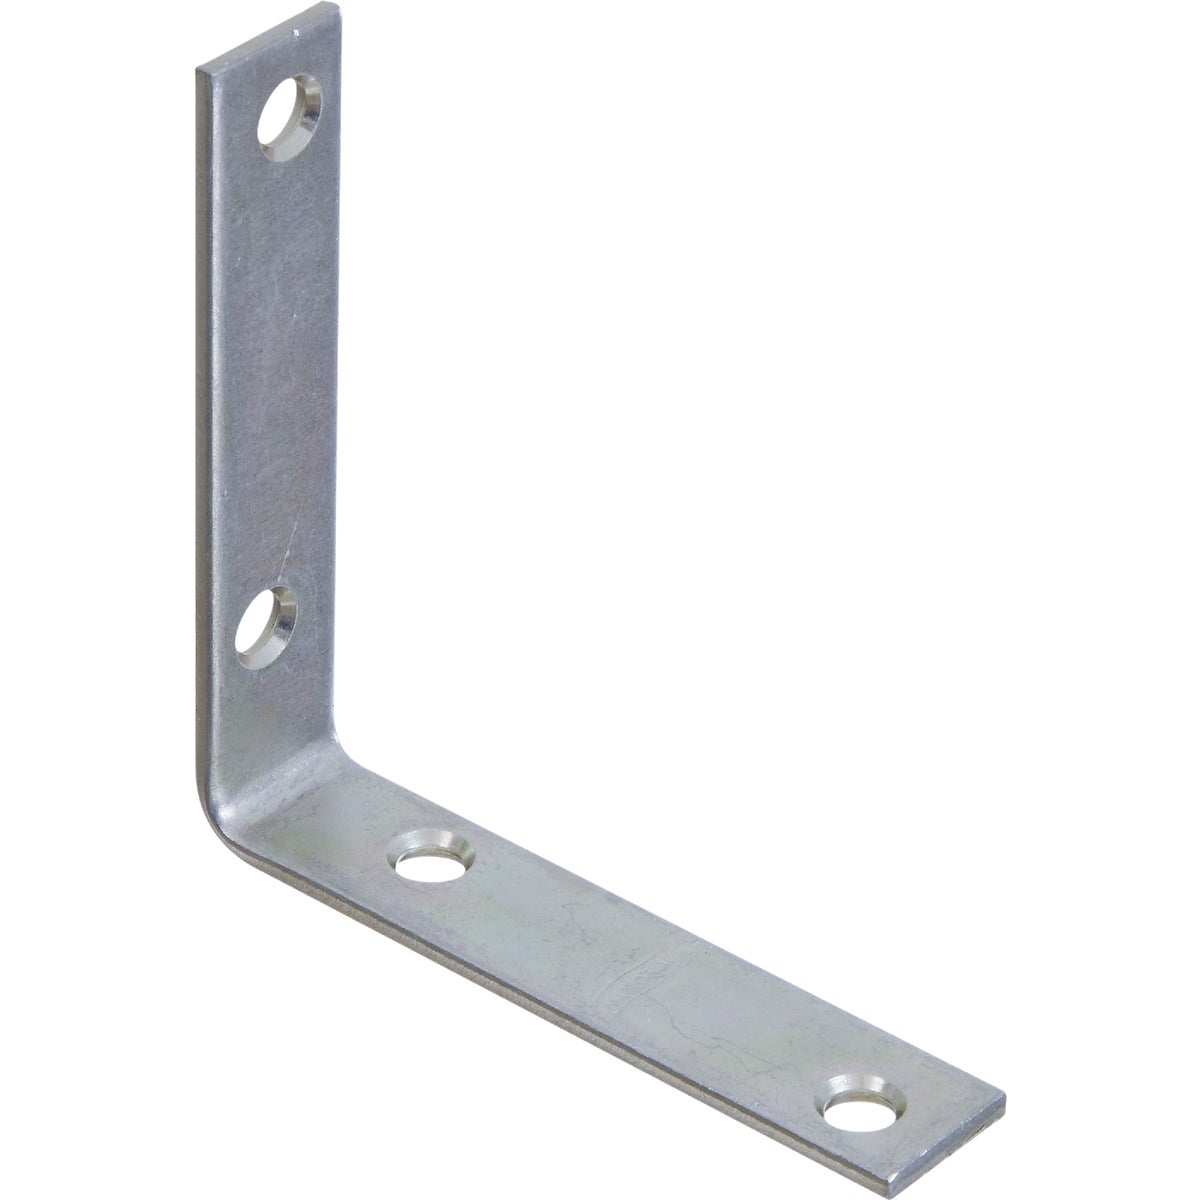 3-1/2X3/4 ZINC BRACE - N264200 by National Mfg Co